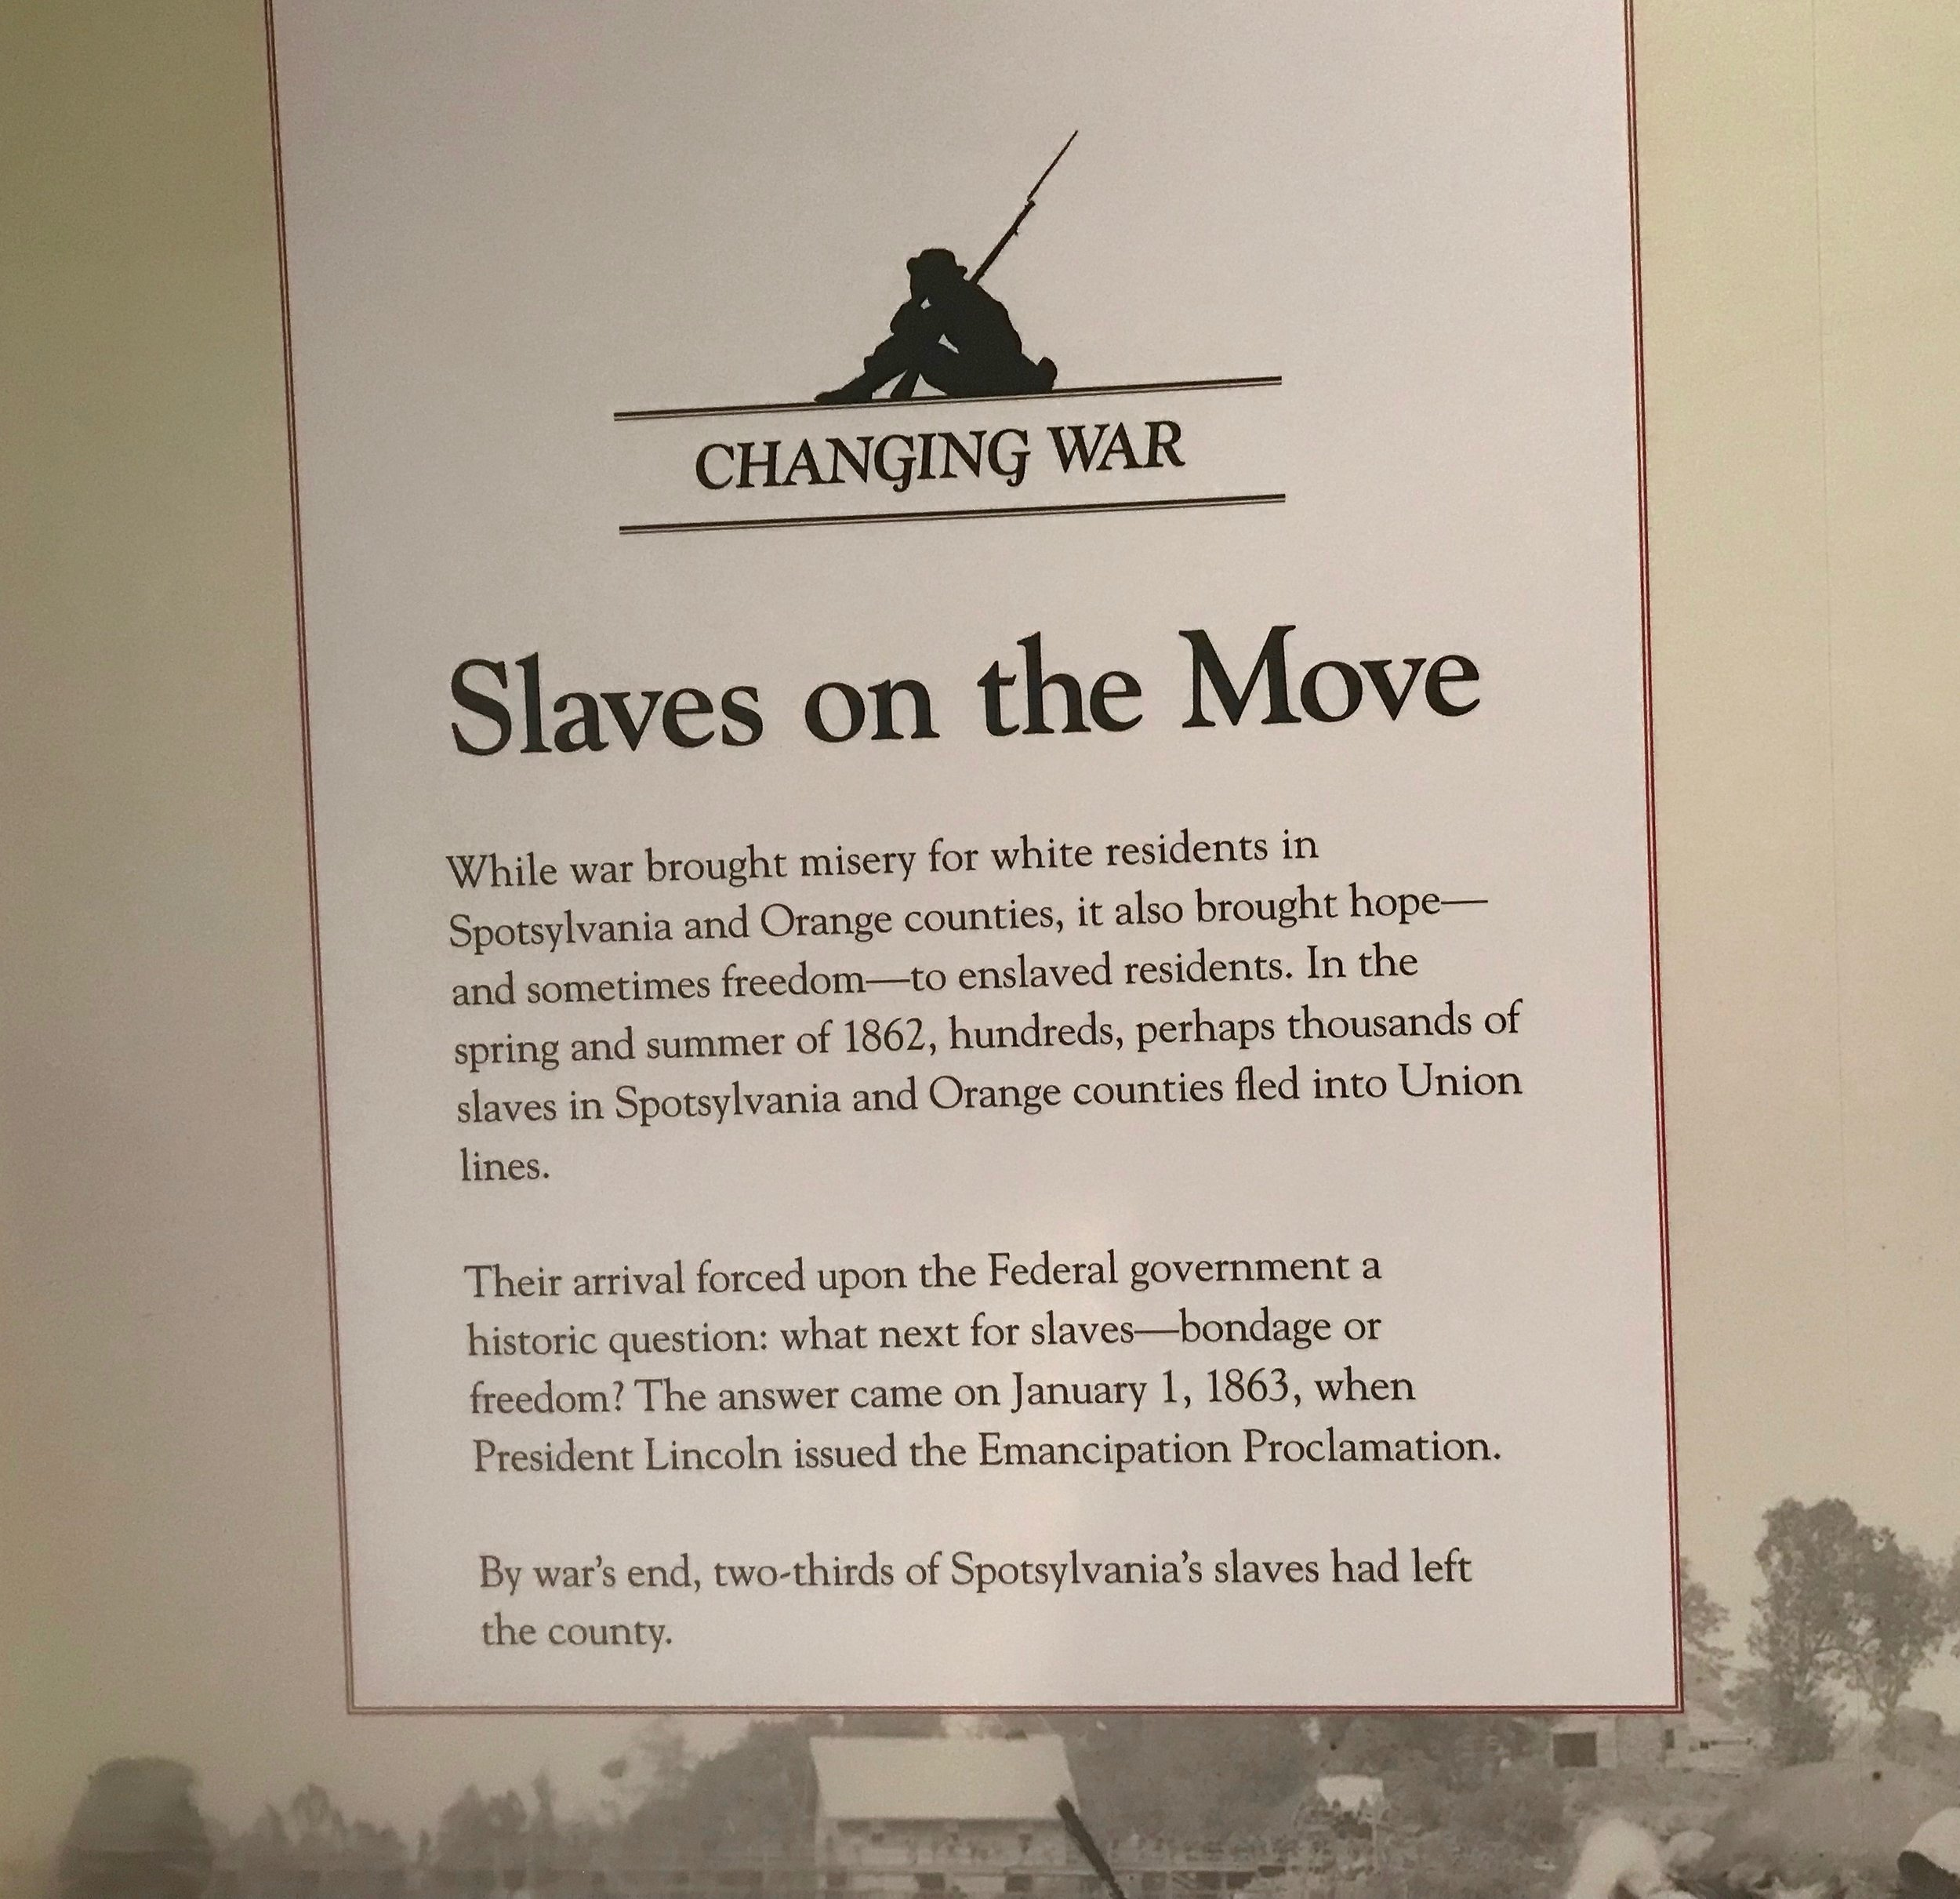 Spotsylvania, Va.: Exhibits now stress that while the advance of Union troops were devastating for Southern landowners, it meant liberation for thousands of enslaved people.